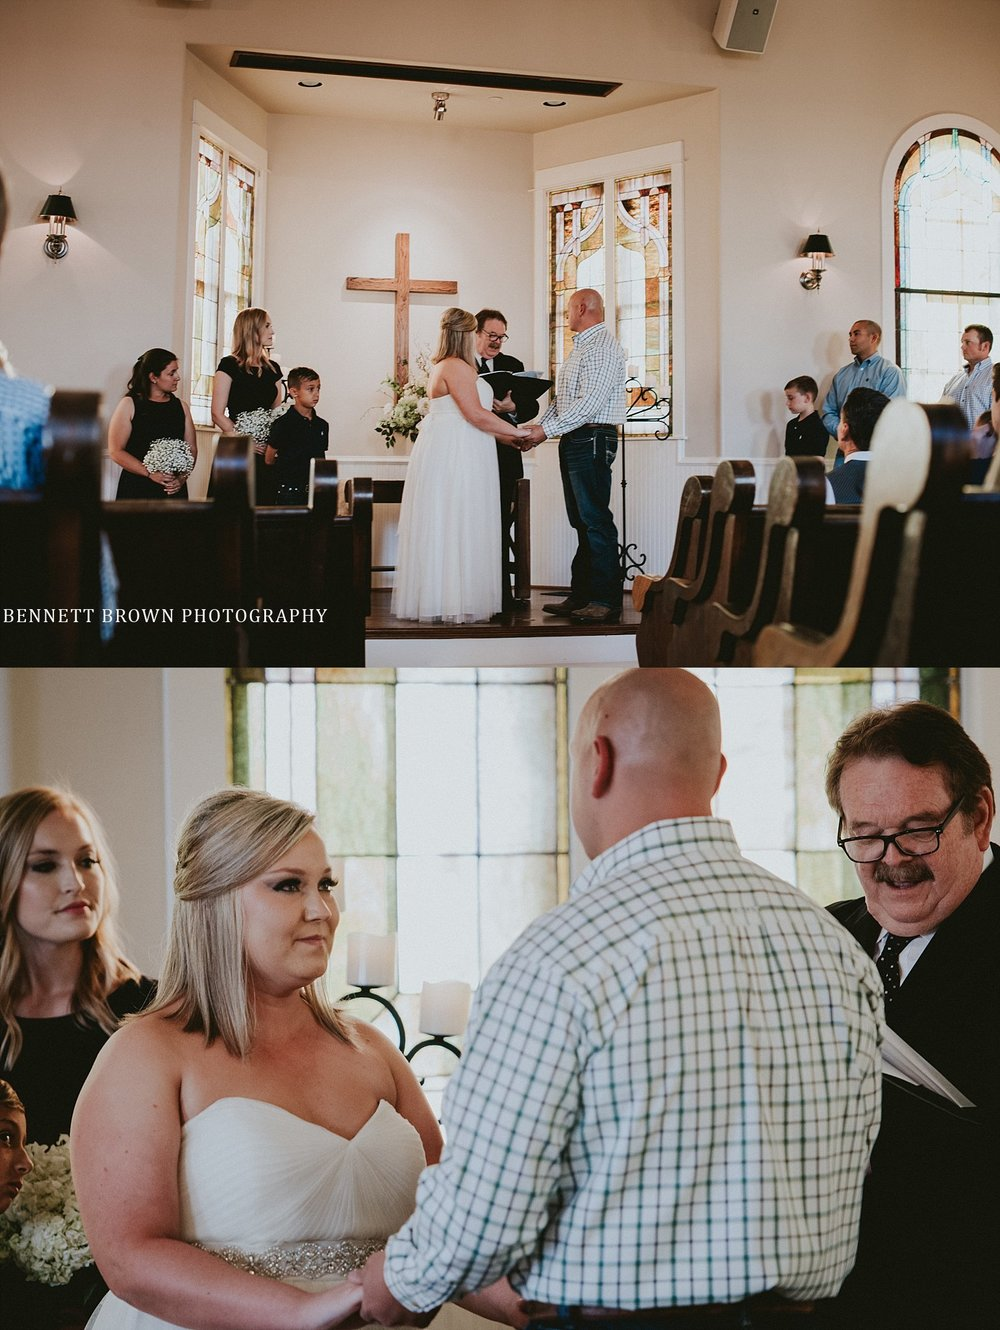 Bennett Brown Photography Frisco Texas Wedding chapel church bride groom wedding party